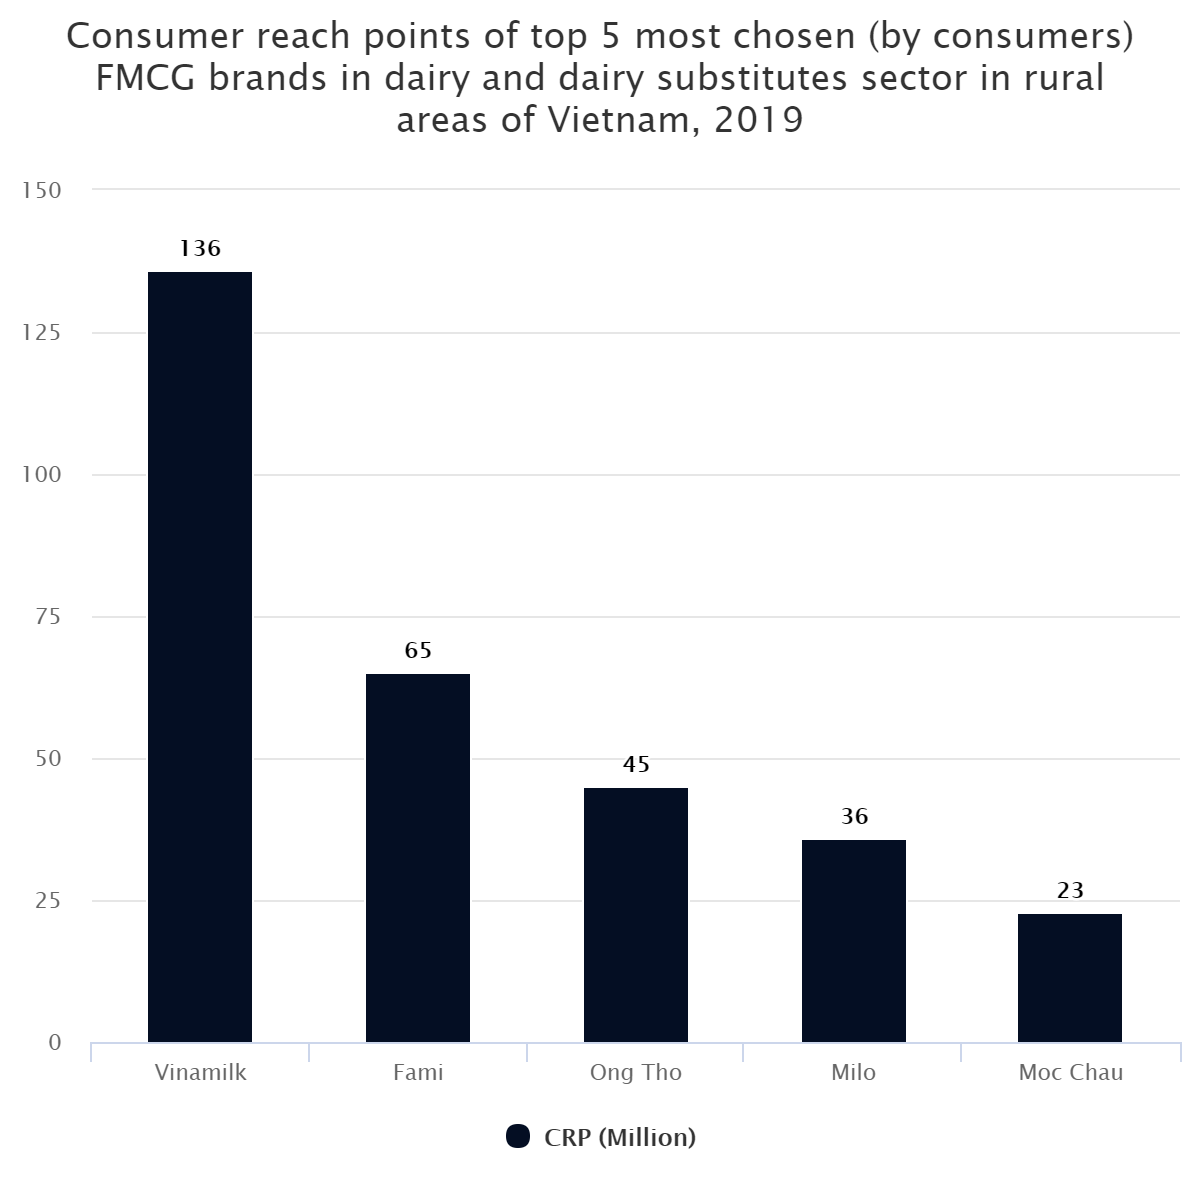 Consumer reach points of top 5 most chosen (by consumers) FMCG brands in dairy and dairy substitutes sector in rural areas of Vietnam, 2019